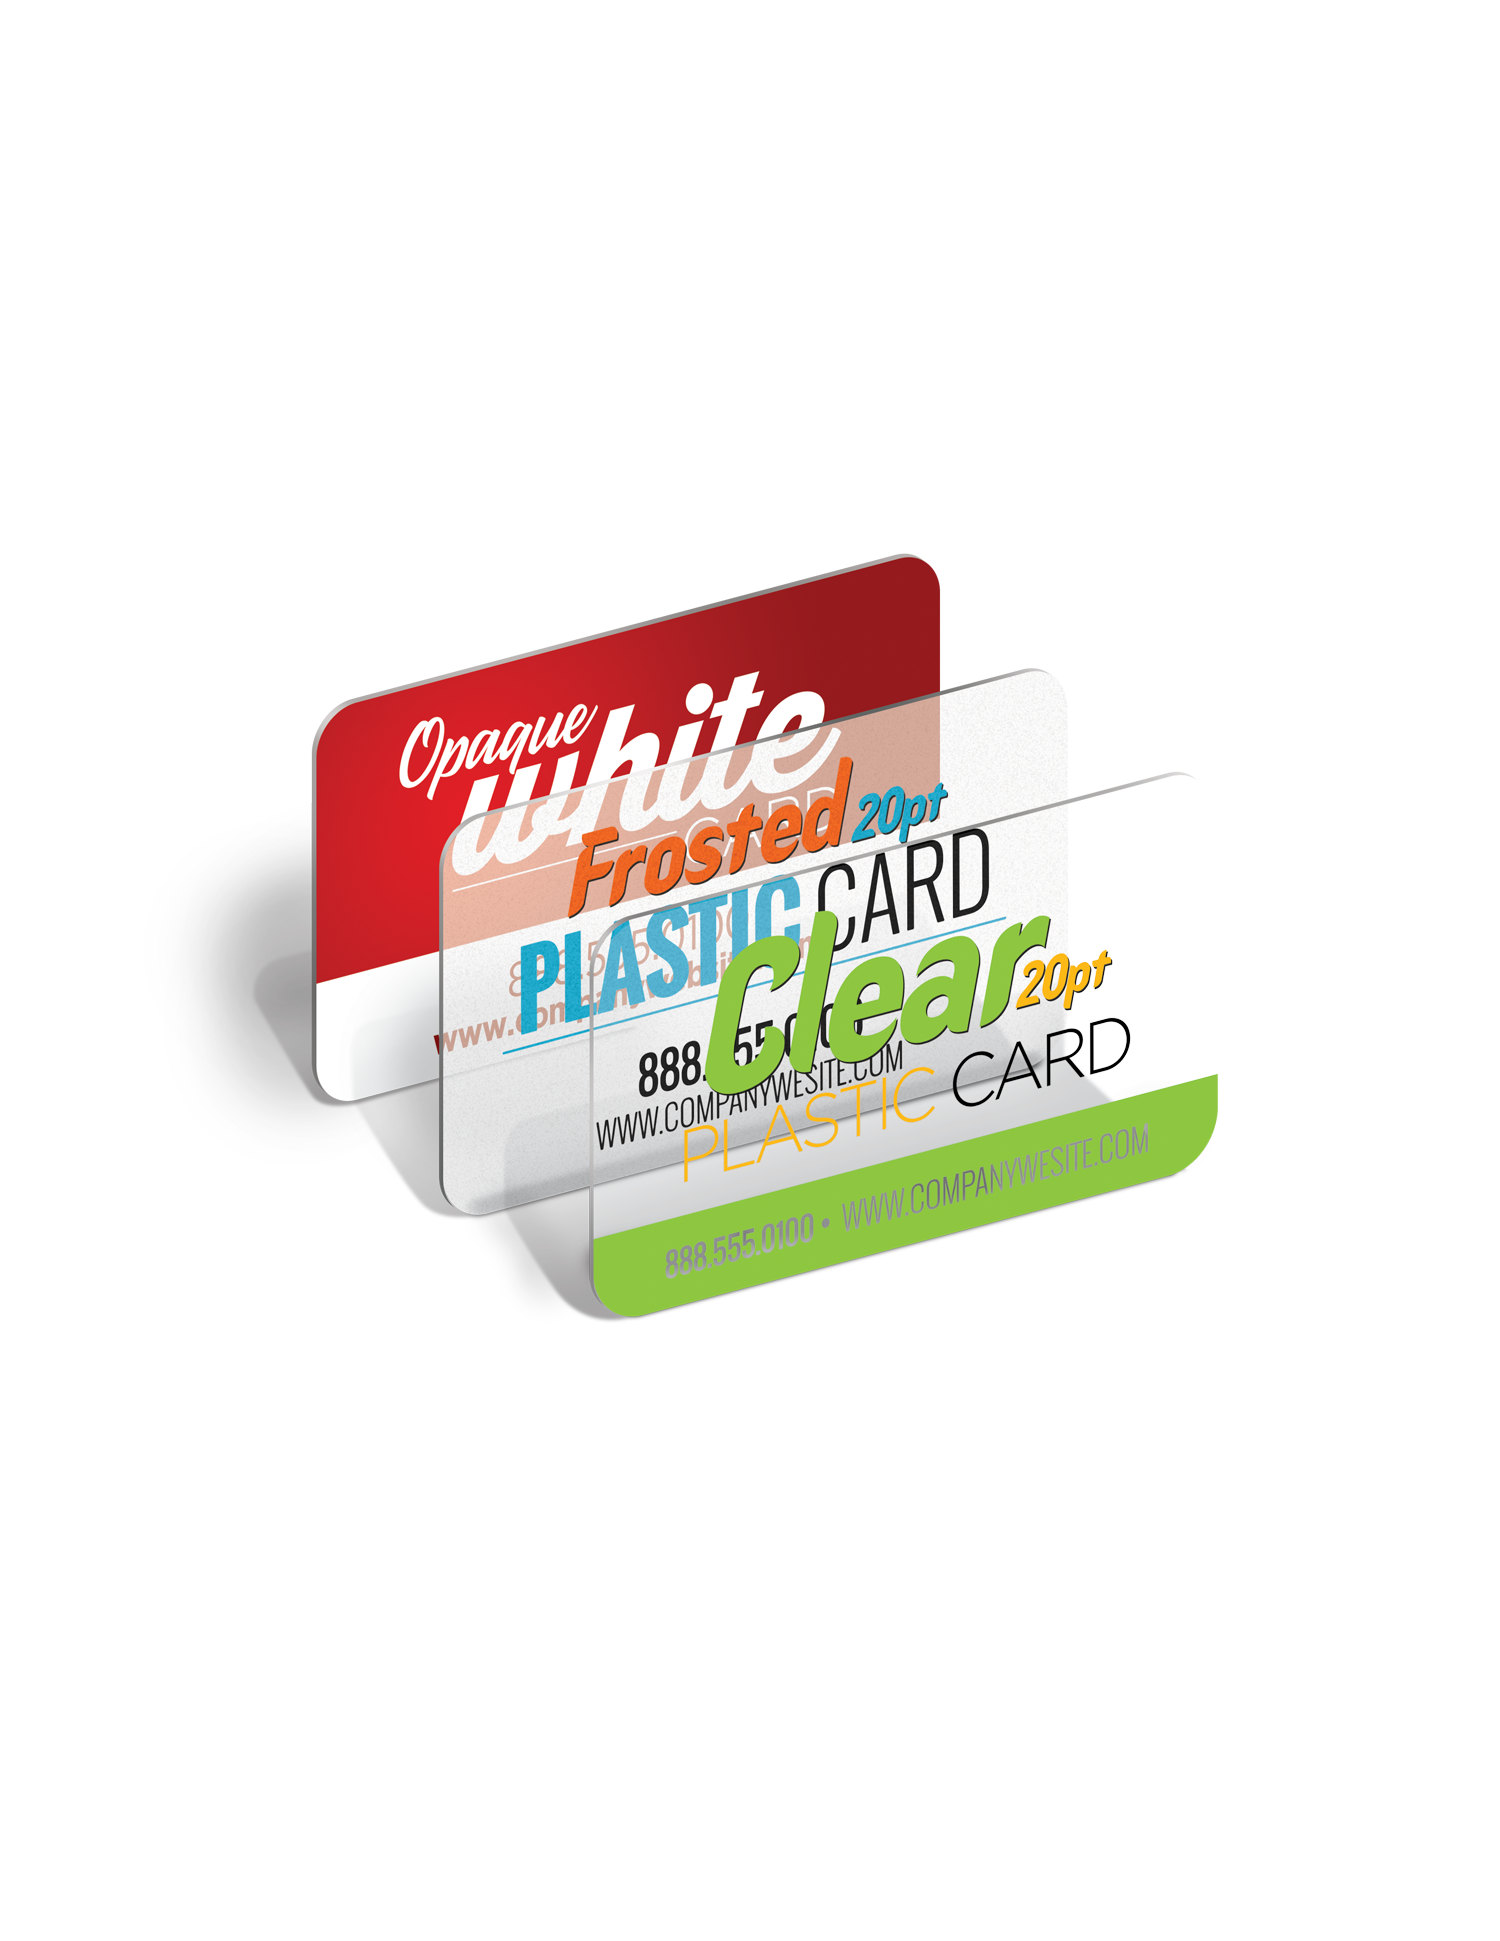 Plastic Business Cards Clear OR Frosted mytai Design